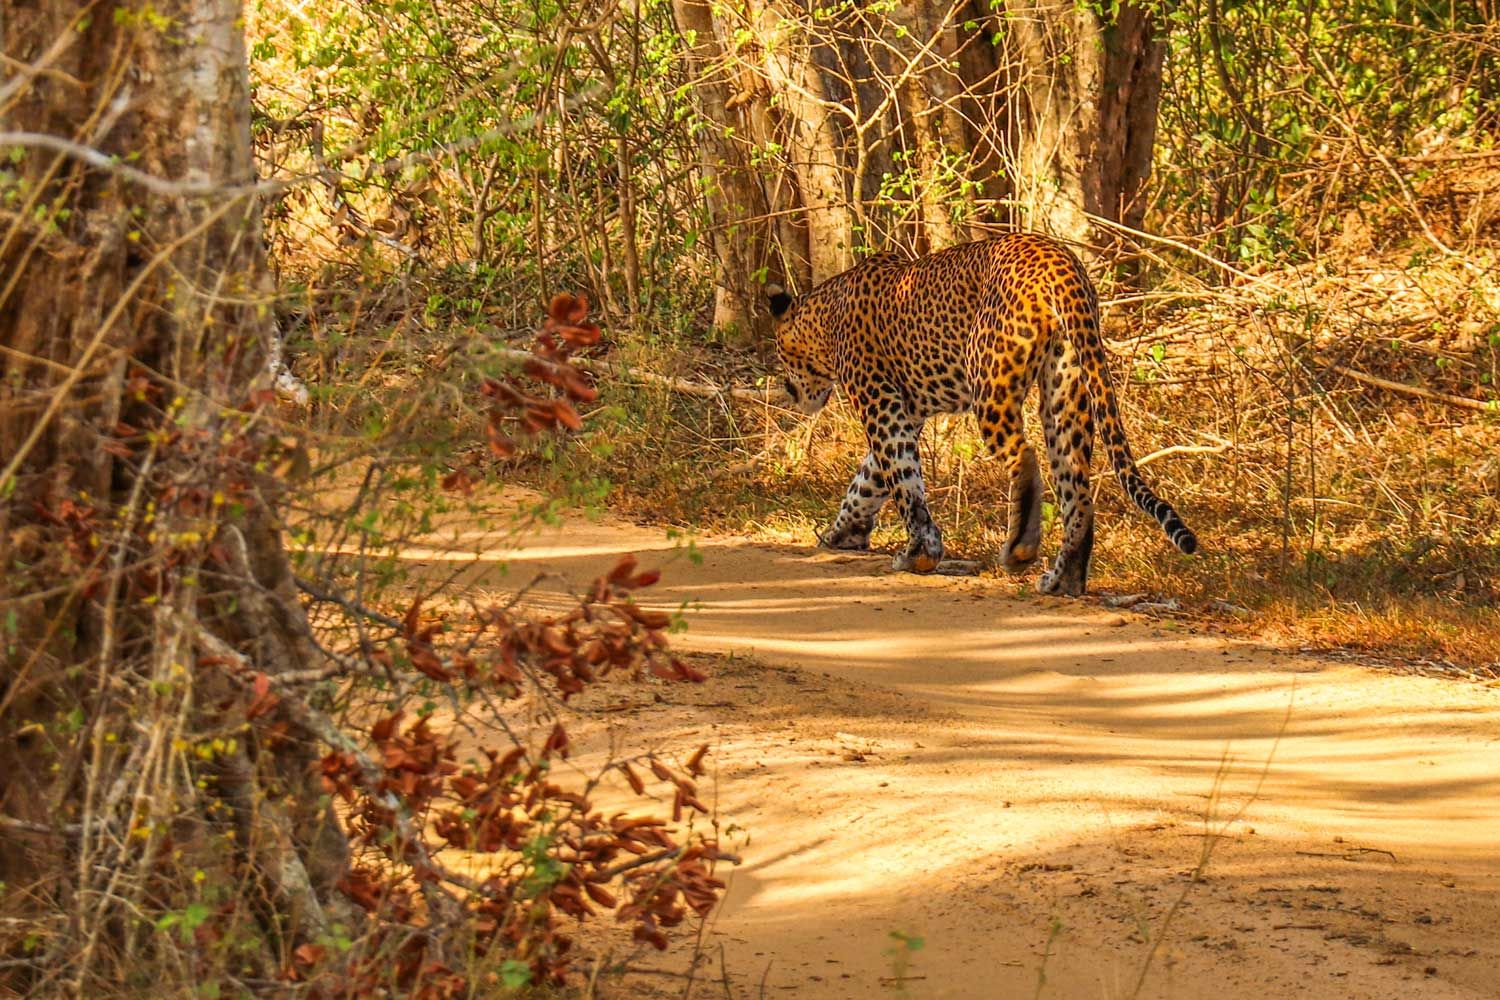 Leopard I Yala National Park Sri Lanka National Parks Park Yala